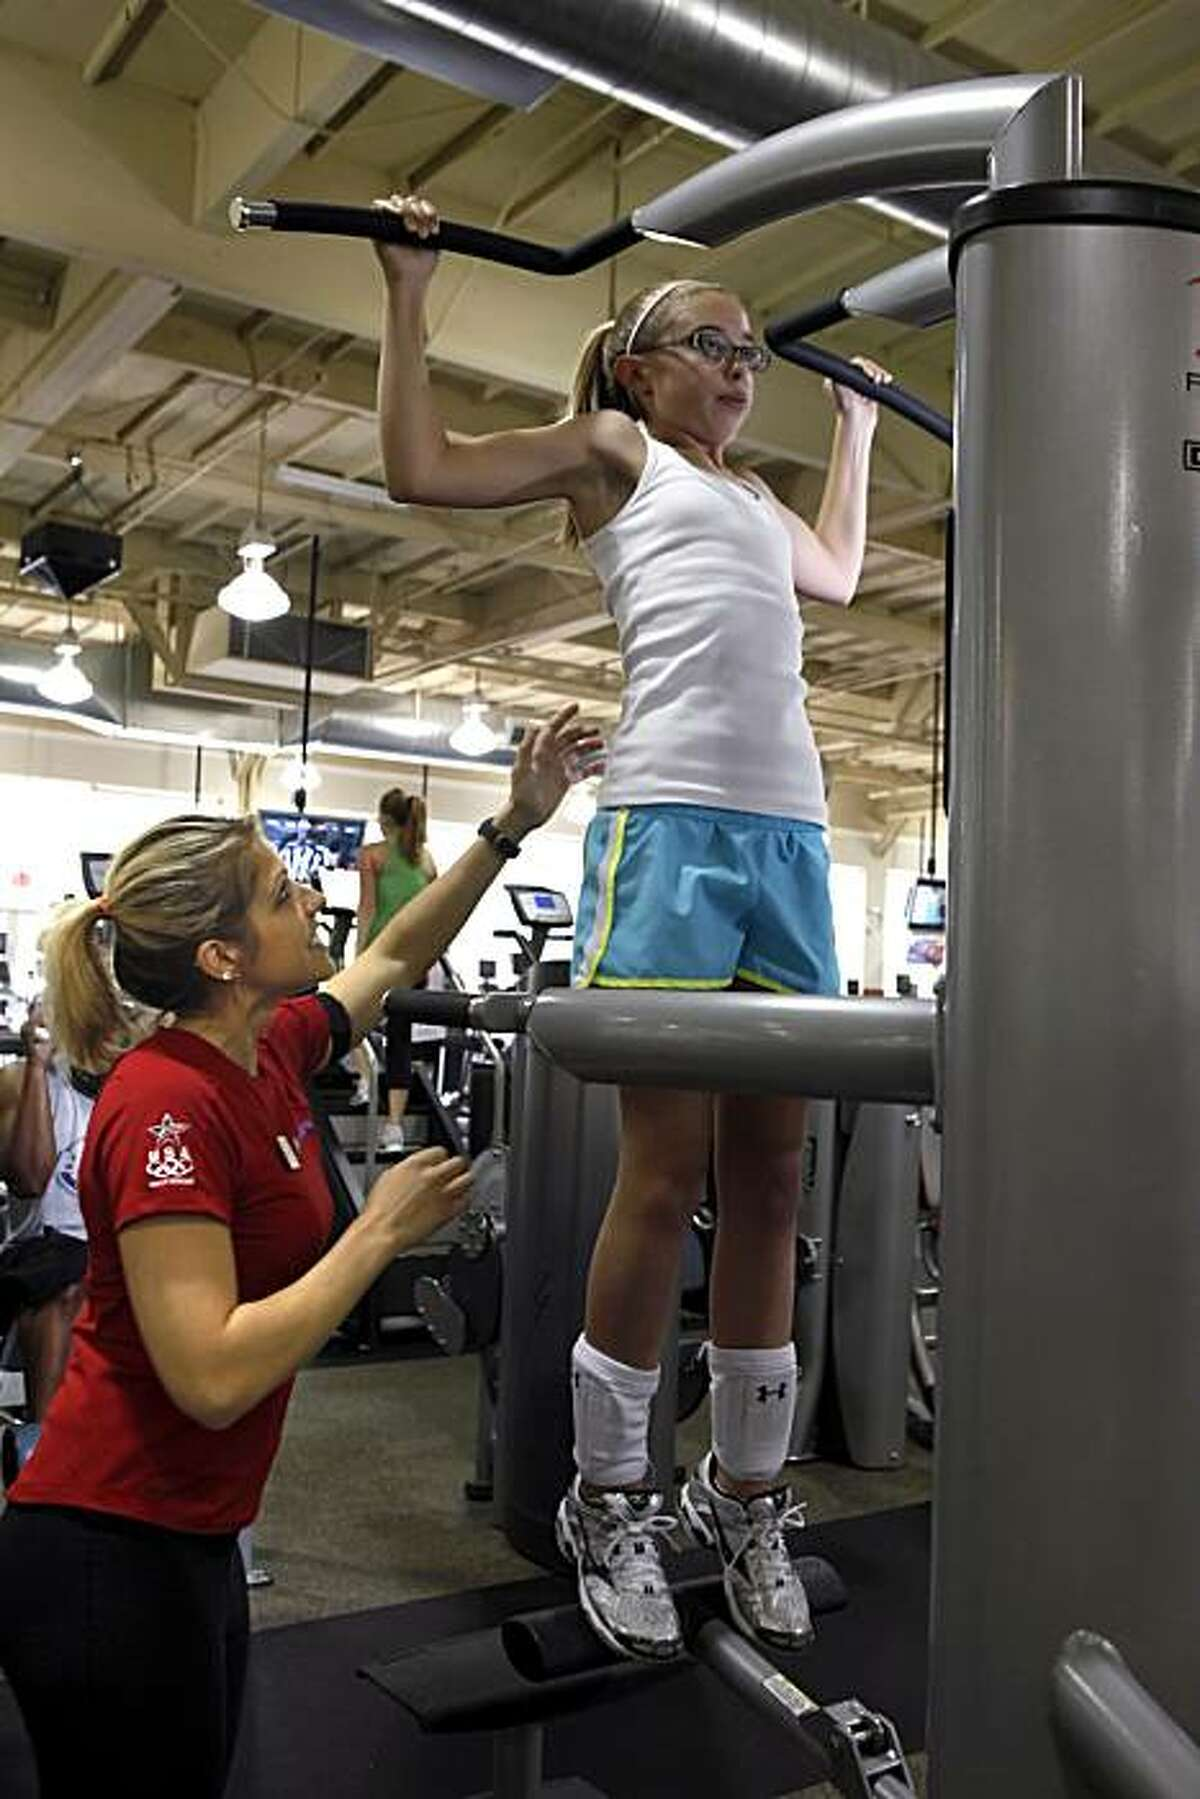 Trainer Terri Whitmore instructs teenager Maddie McPhail in the proper way to lift and do strength training at 24 Hour Fitness in Rheem, Calif., on Tuesday, May 4, 2010. A new study shows that injuries among teen girl weight lifters has shot up 143% between 1990 and 2007.